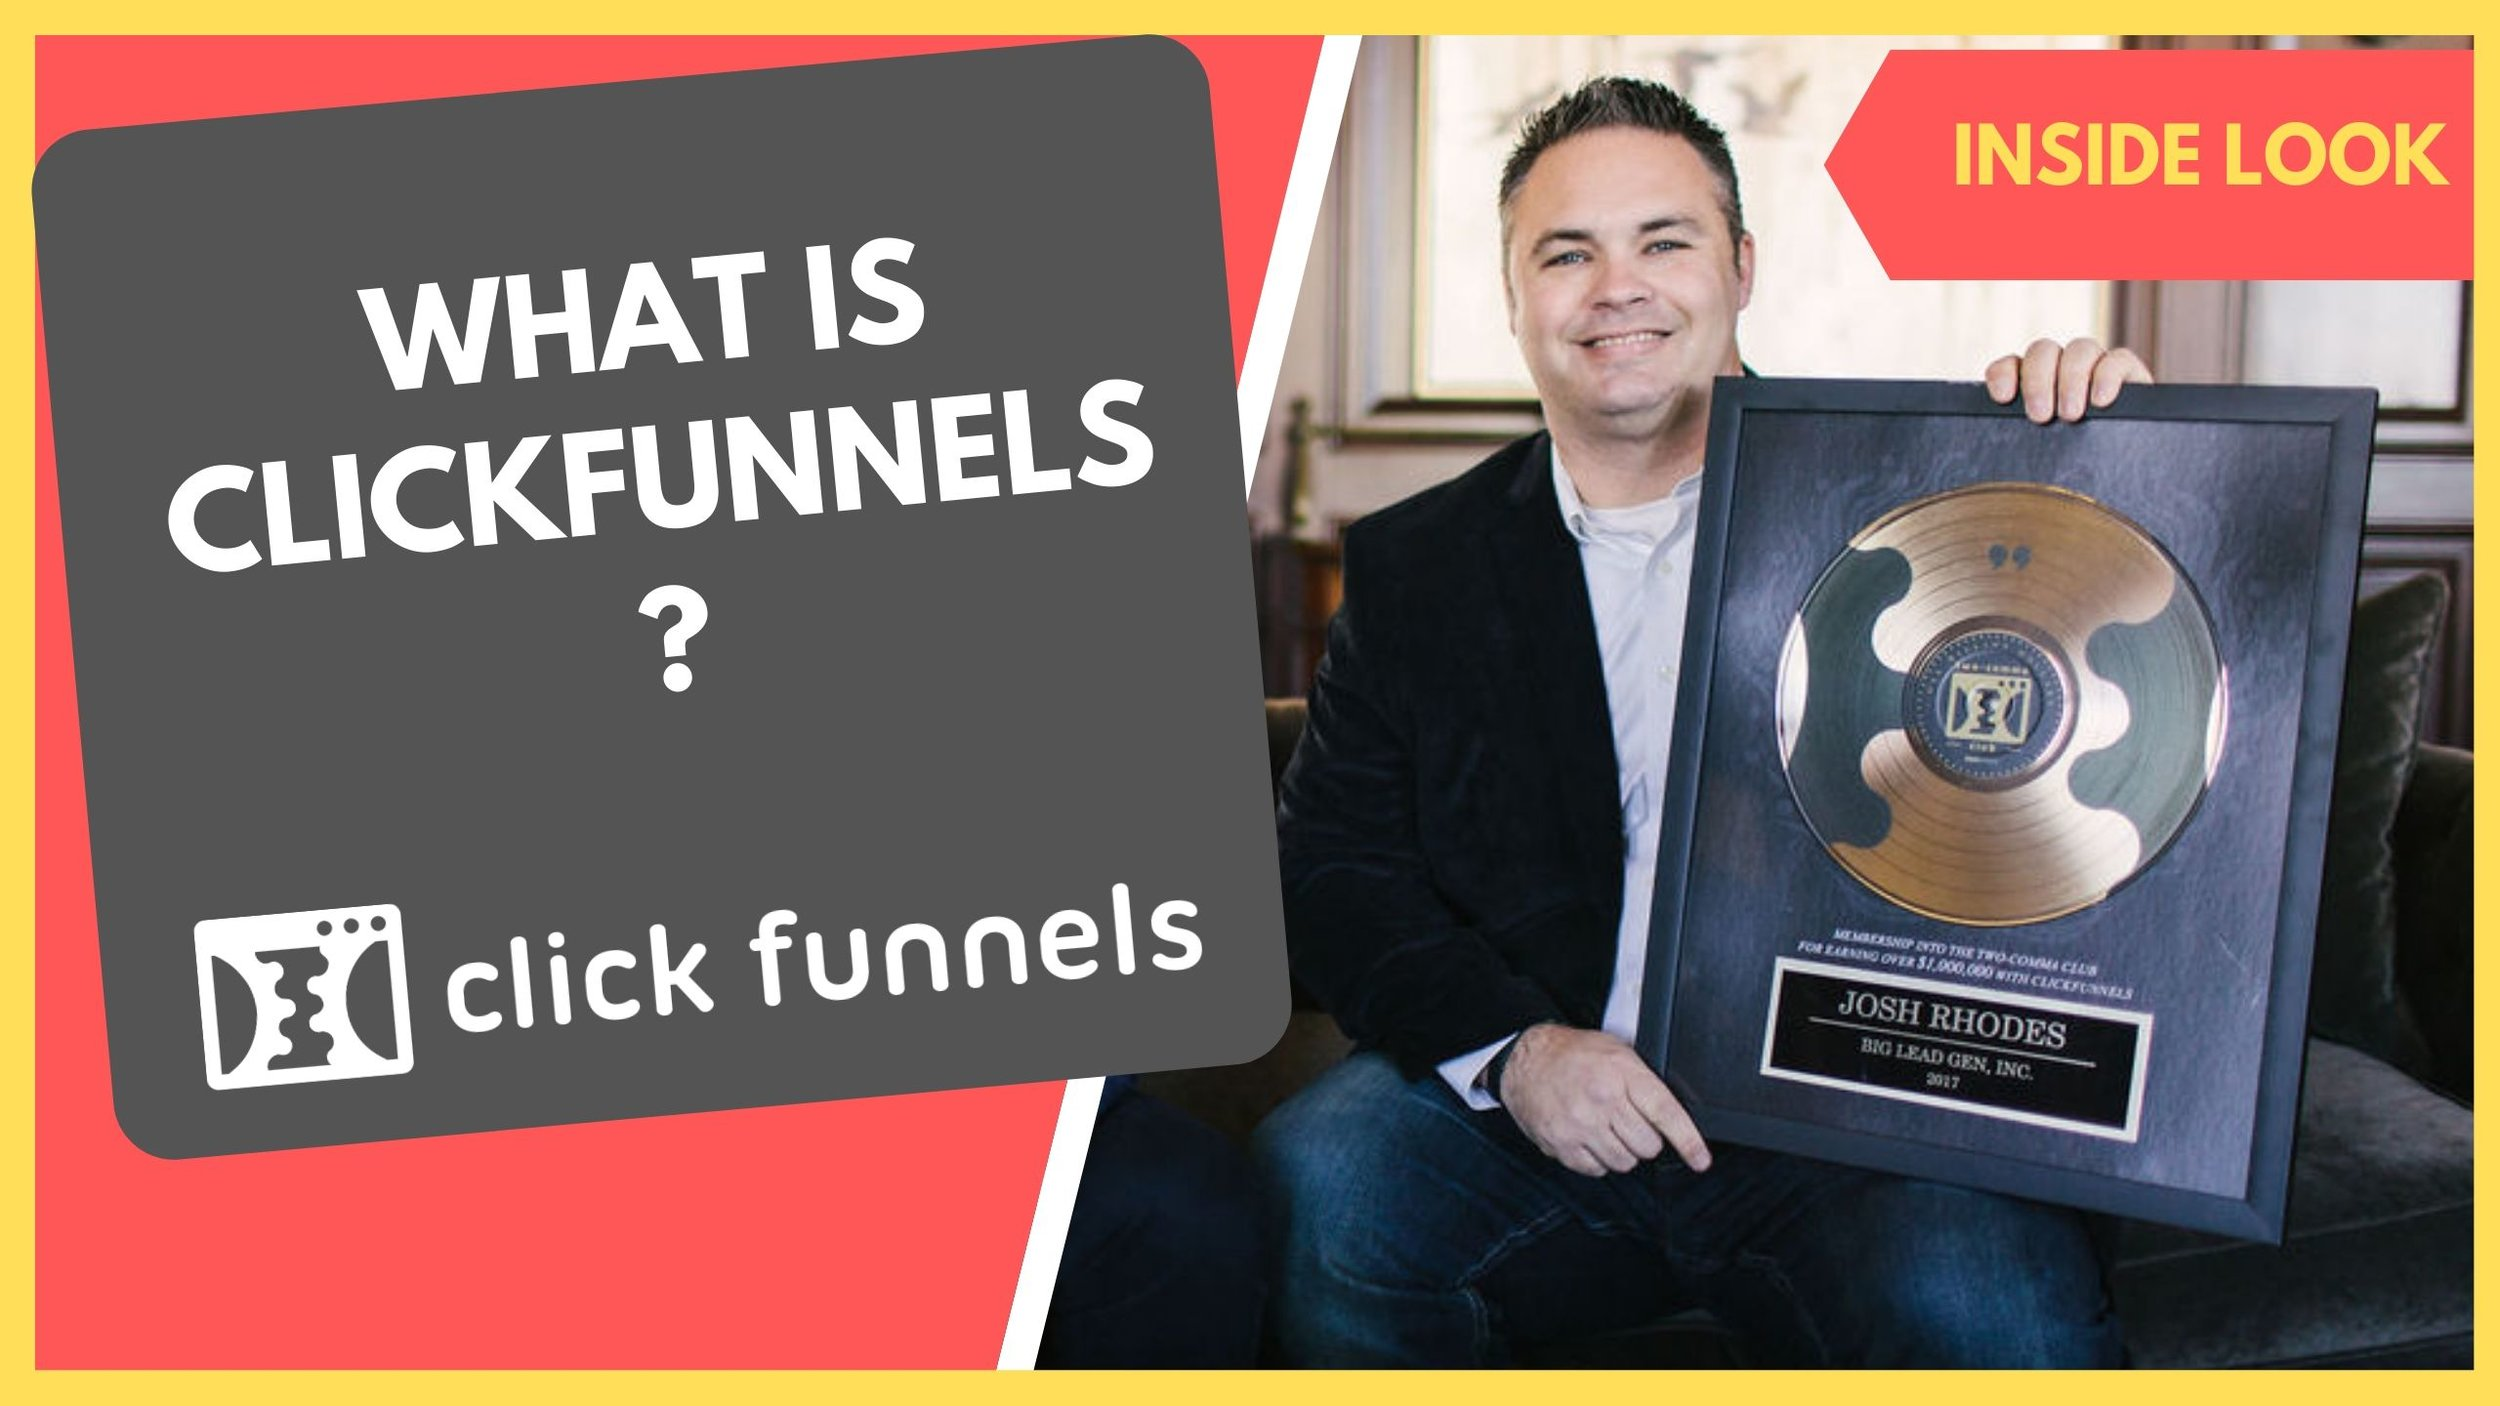 How To Get Traffic To Clickfunnels